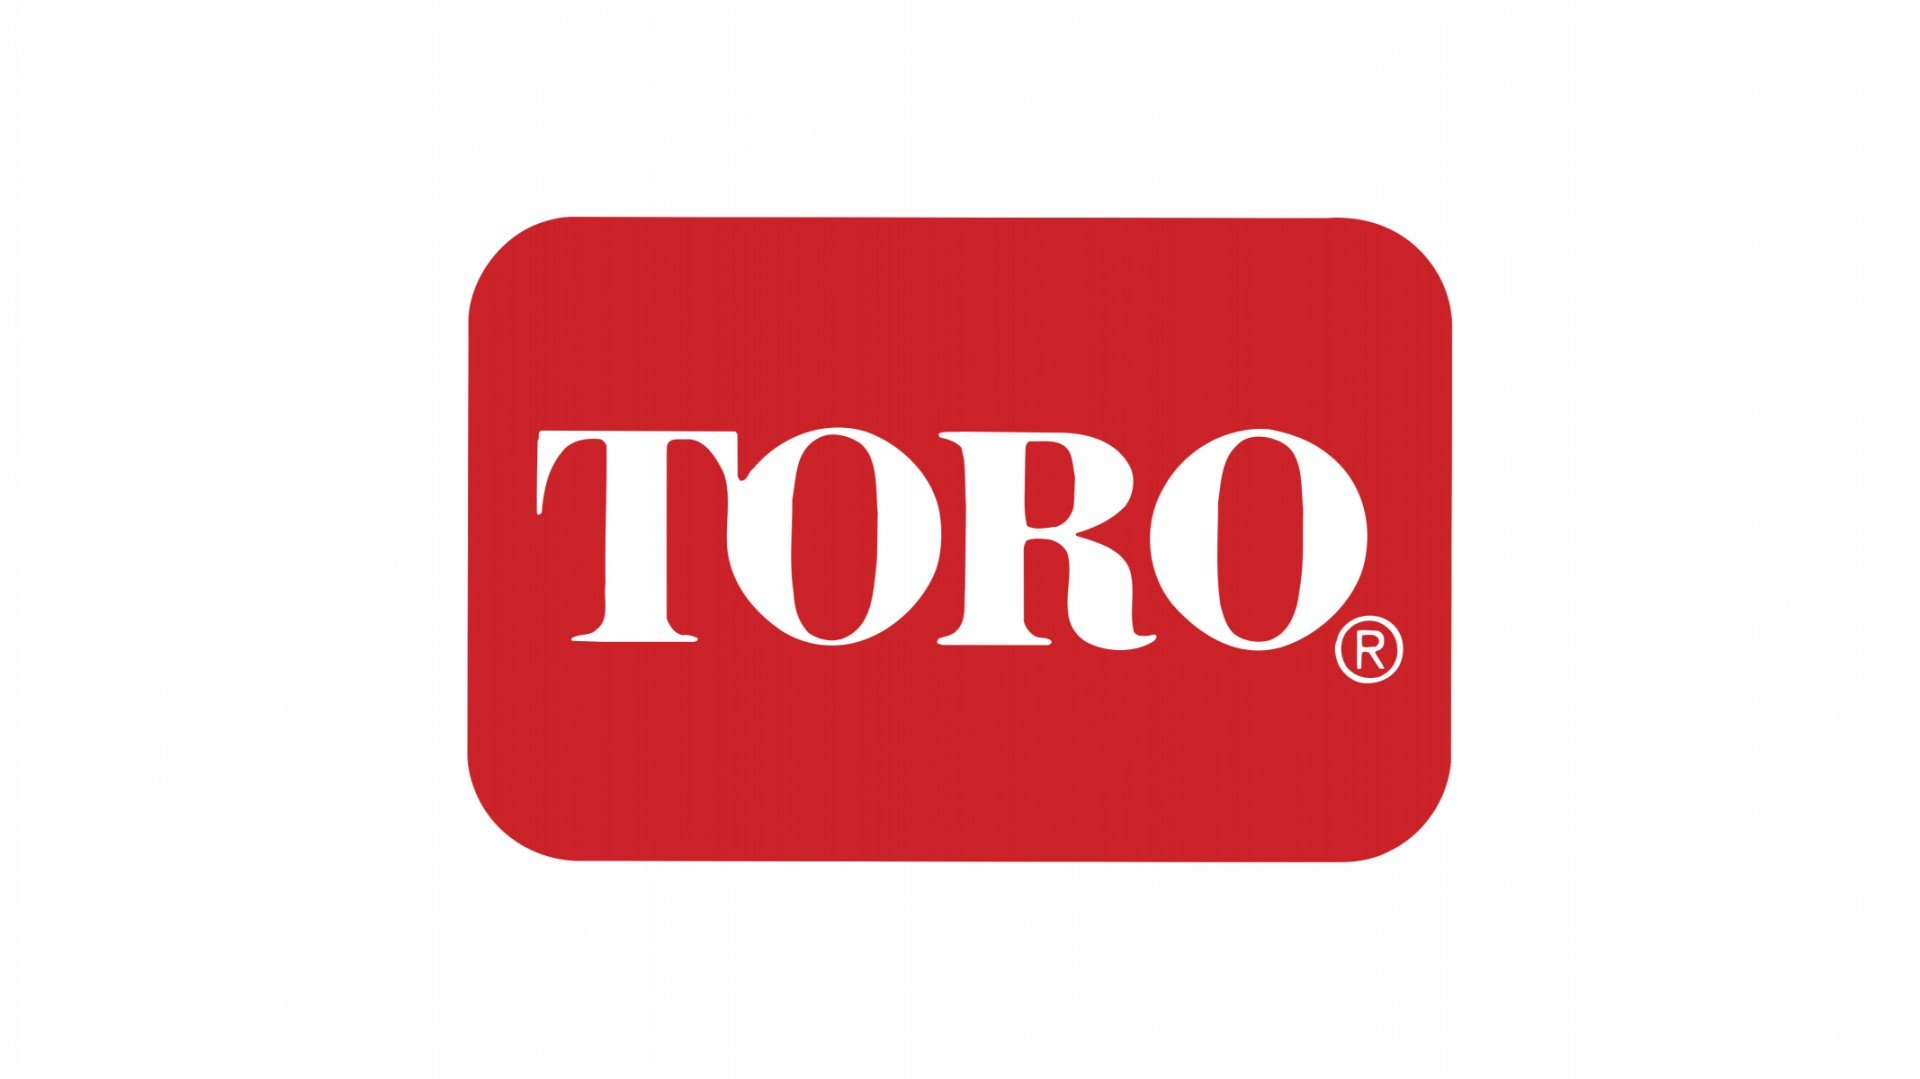 Toro acquires Ditch Witch parent Charles Machine Works.